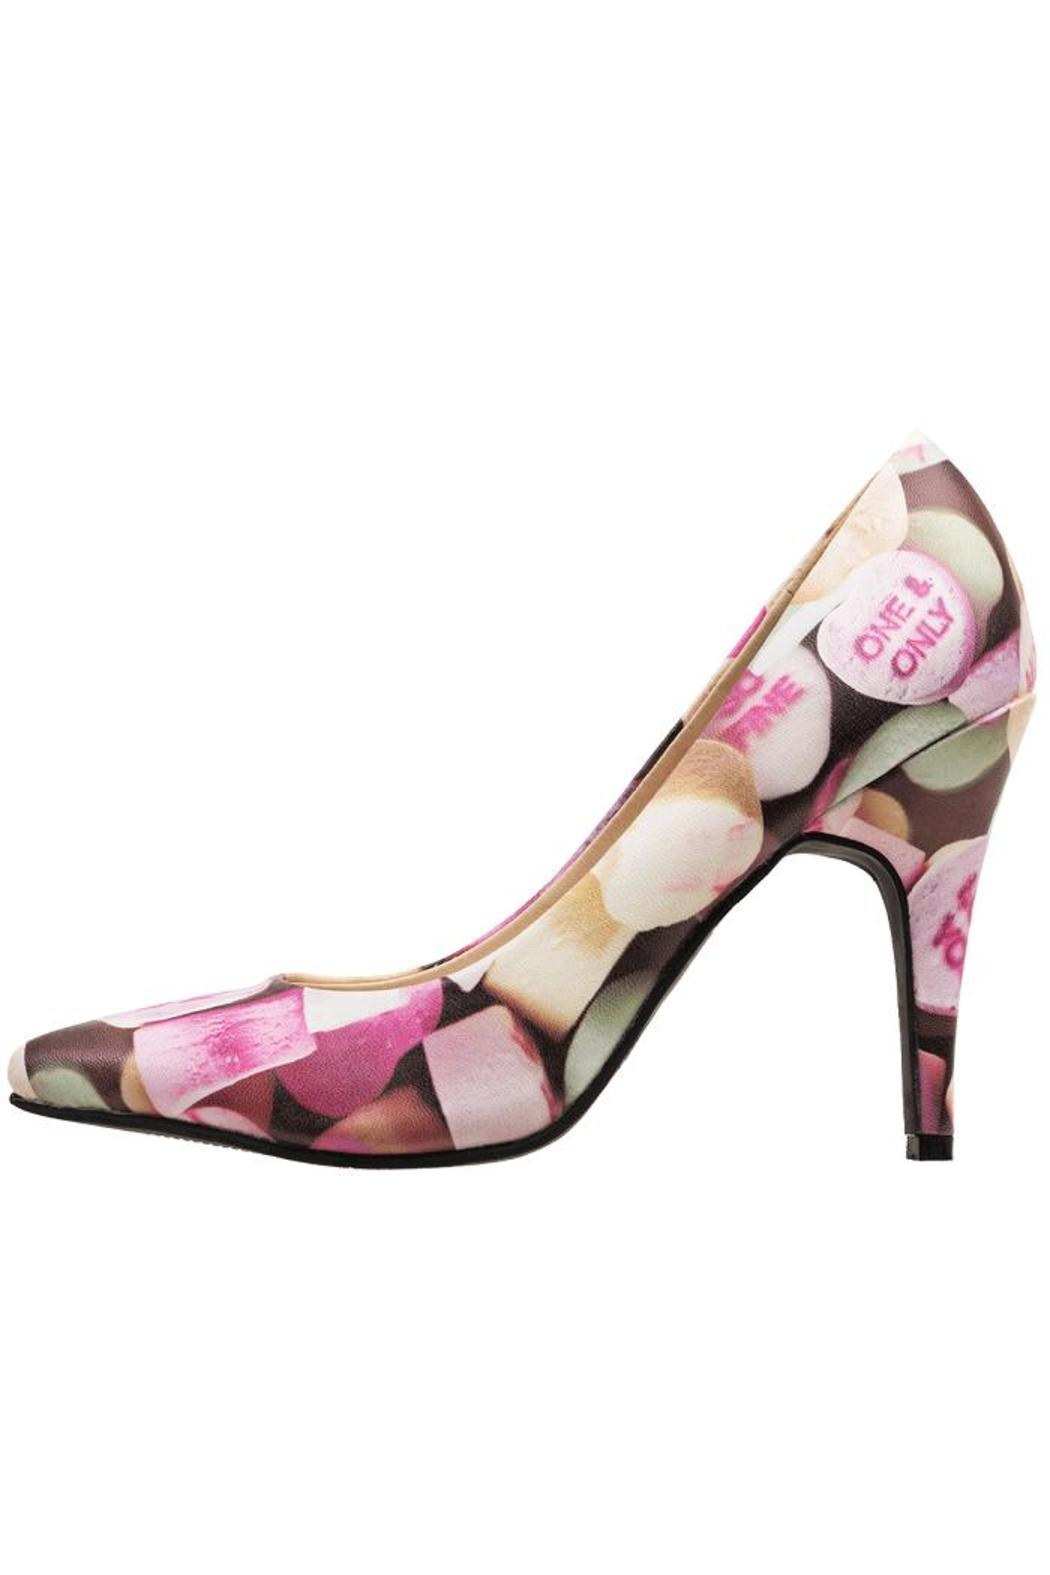 T.U.K. Shoes Candy Hearts Heels - Front Cropped Image